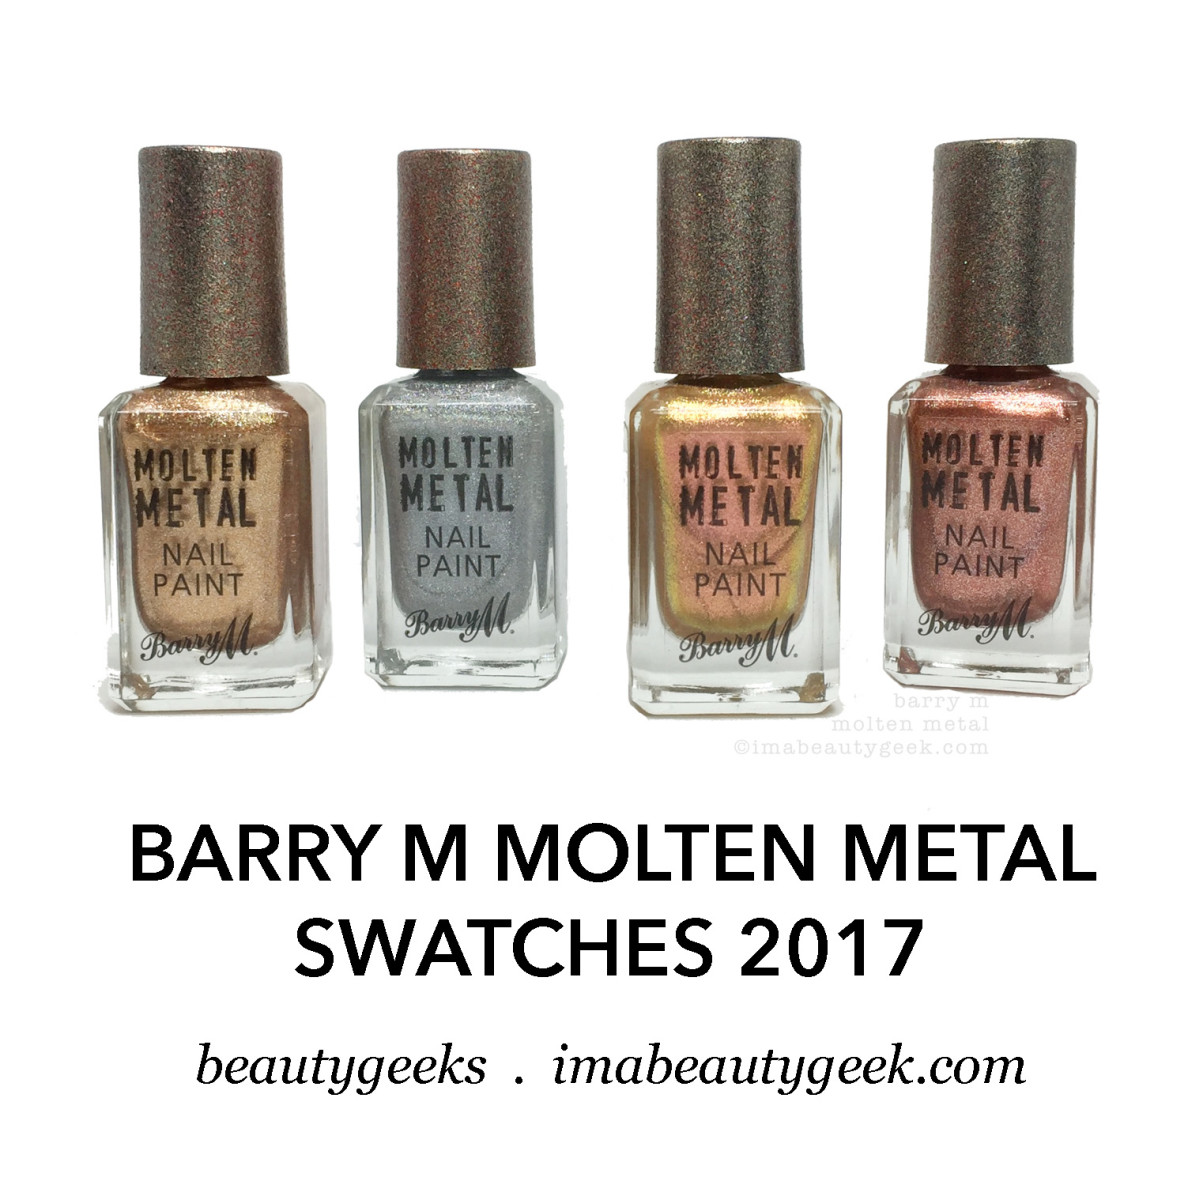 Barry M Molten Metal Swatches 2017 LP_title image